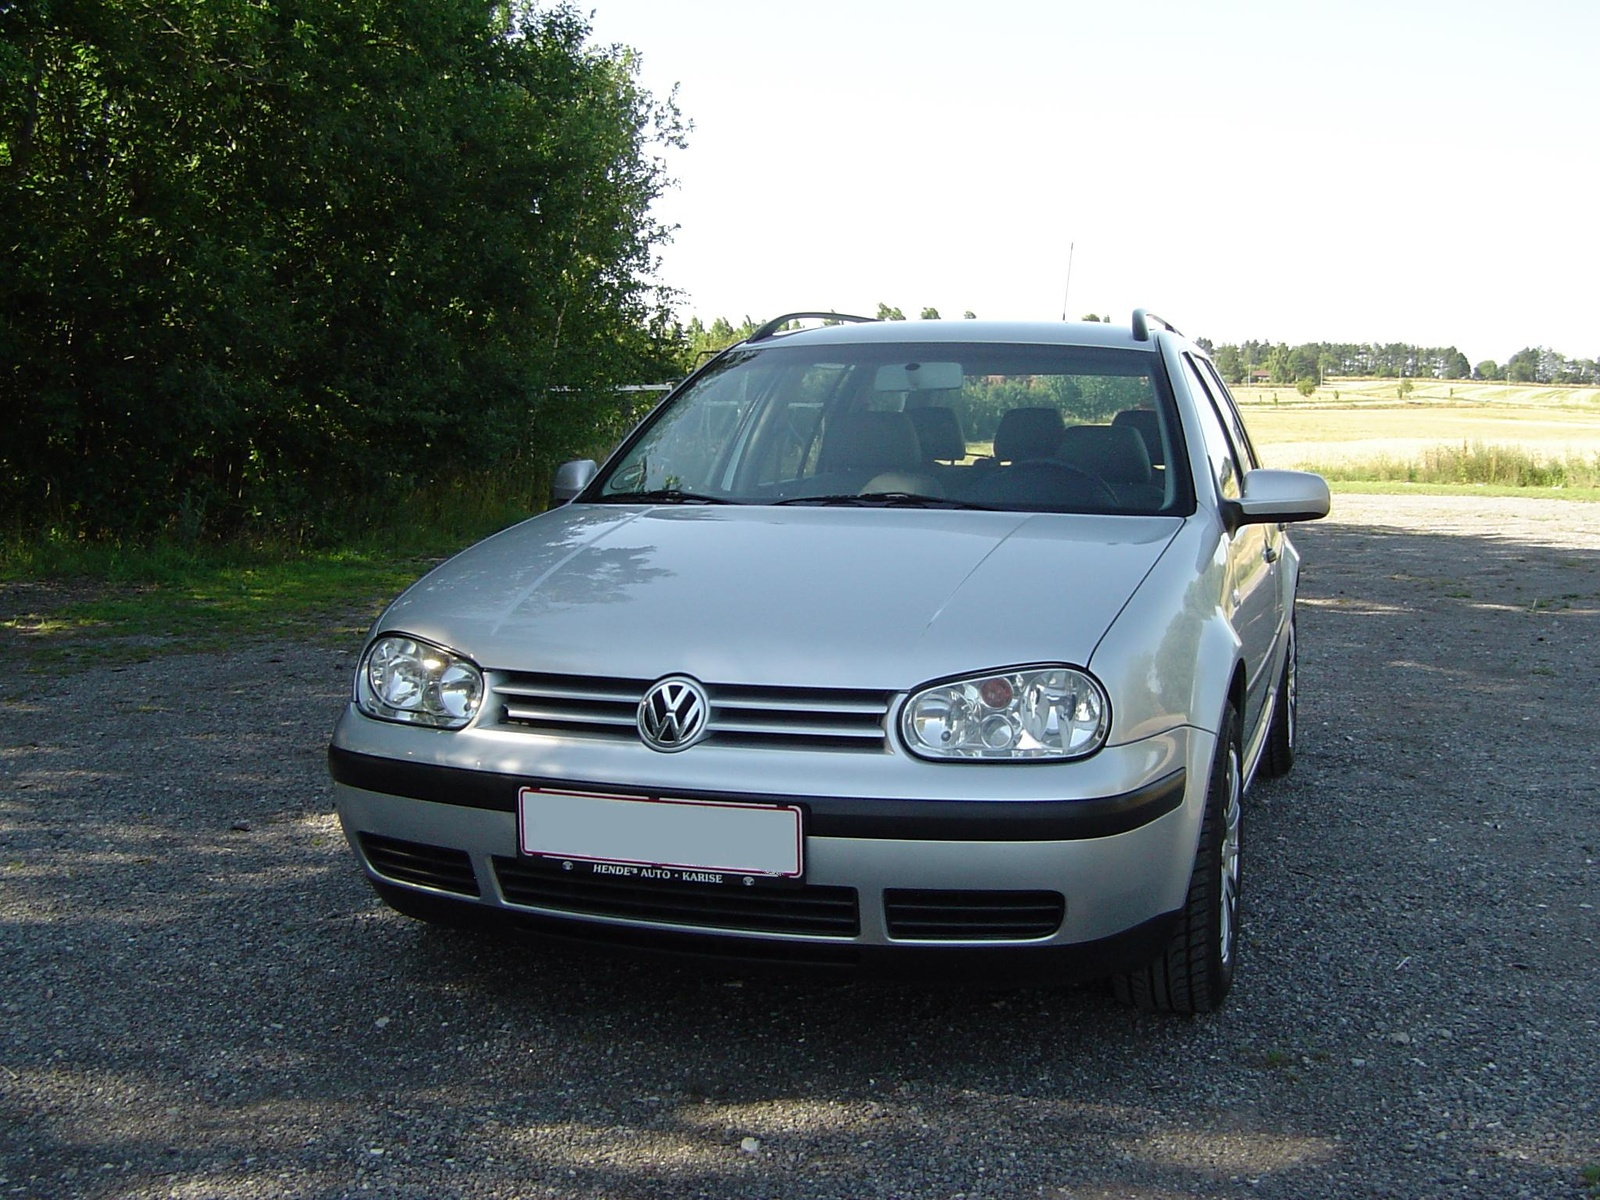 2000 Volkswagen Golf - Information and photos - ZombieDrive